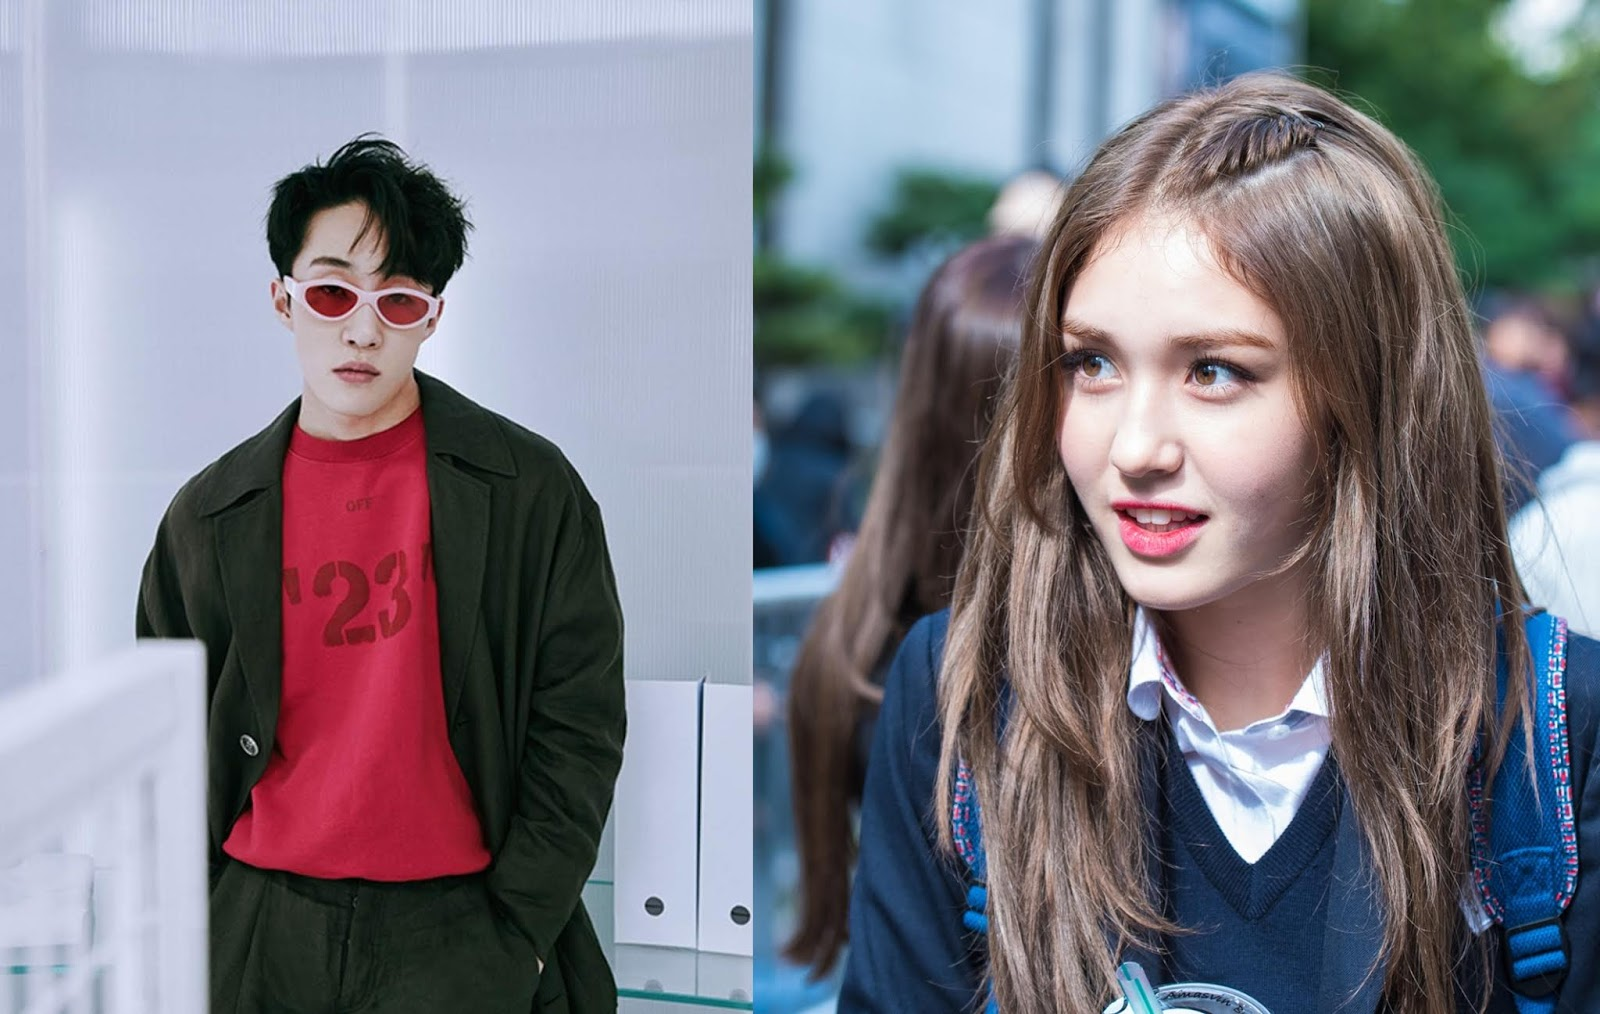 Zion.T Announces Are Preparing A New Song With Jeon Somi